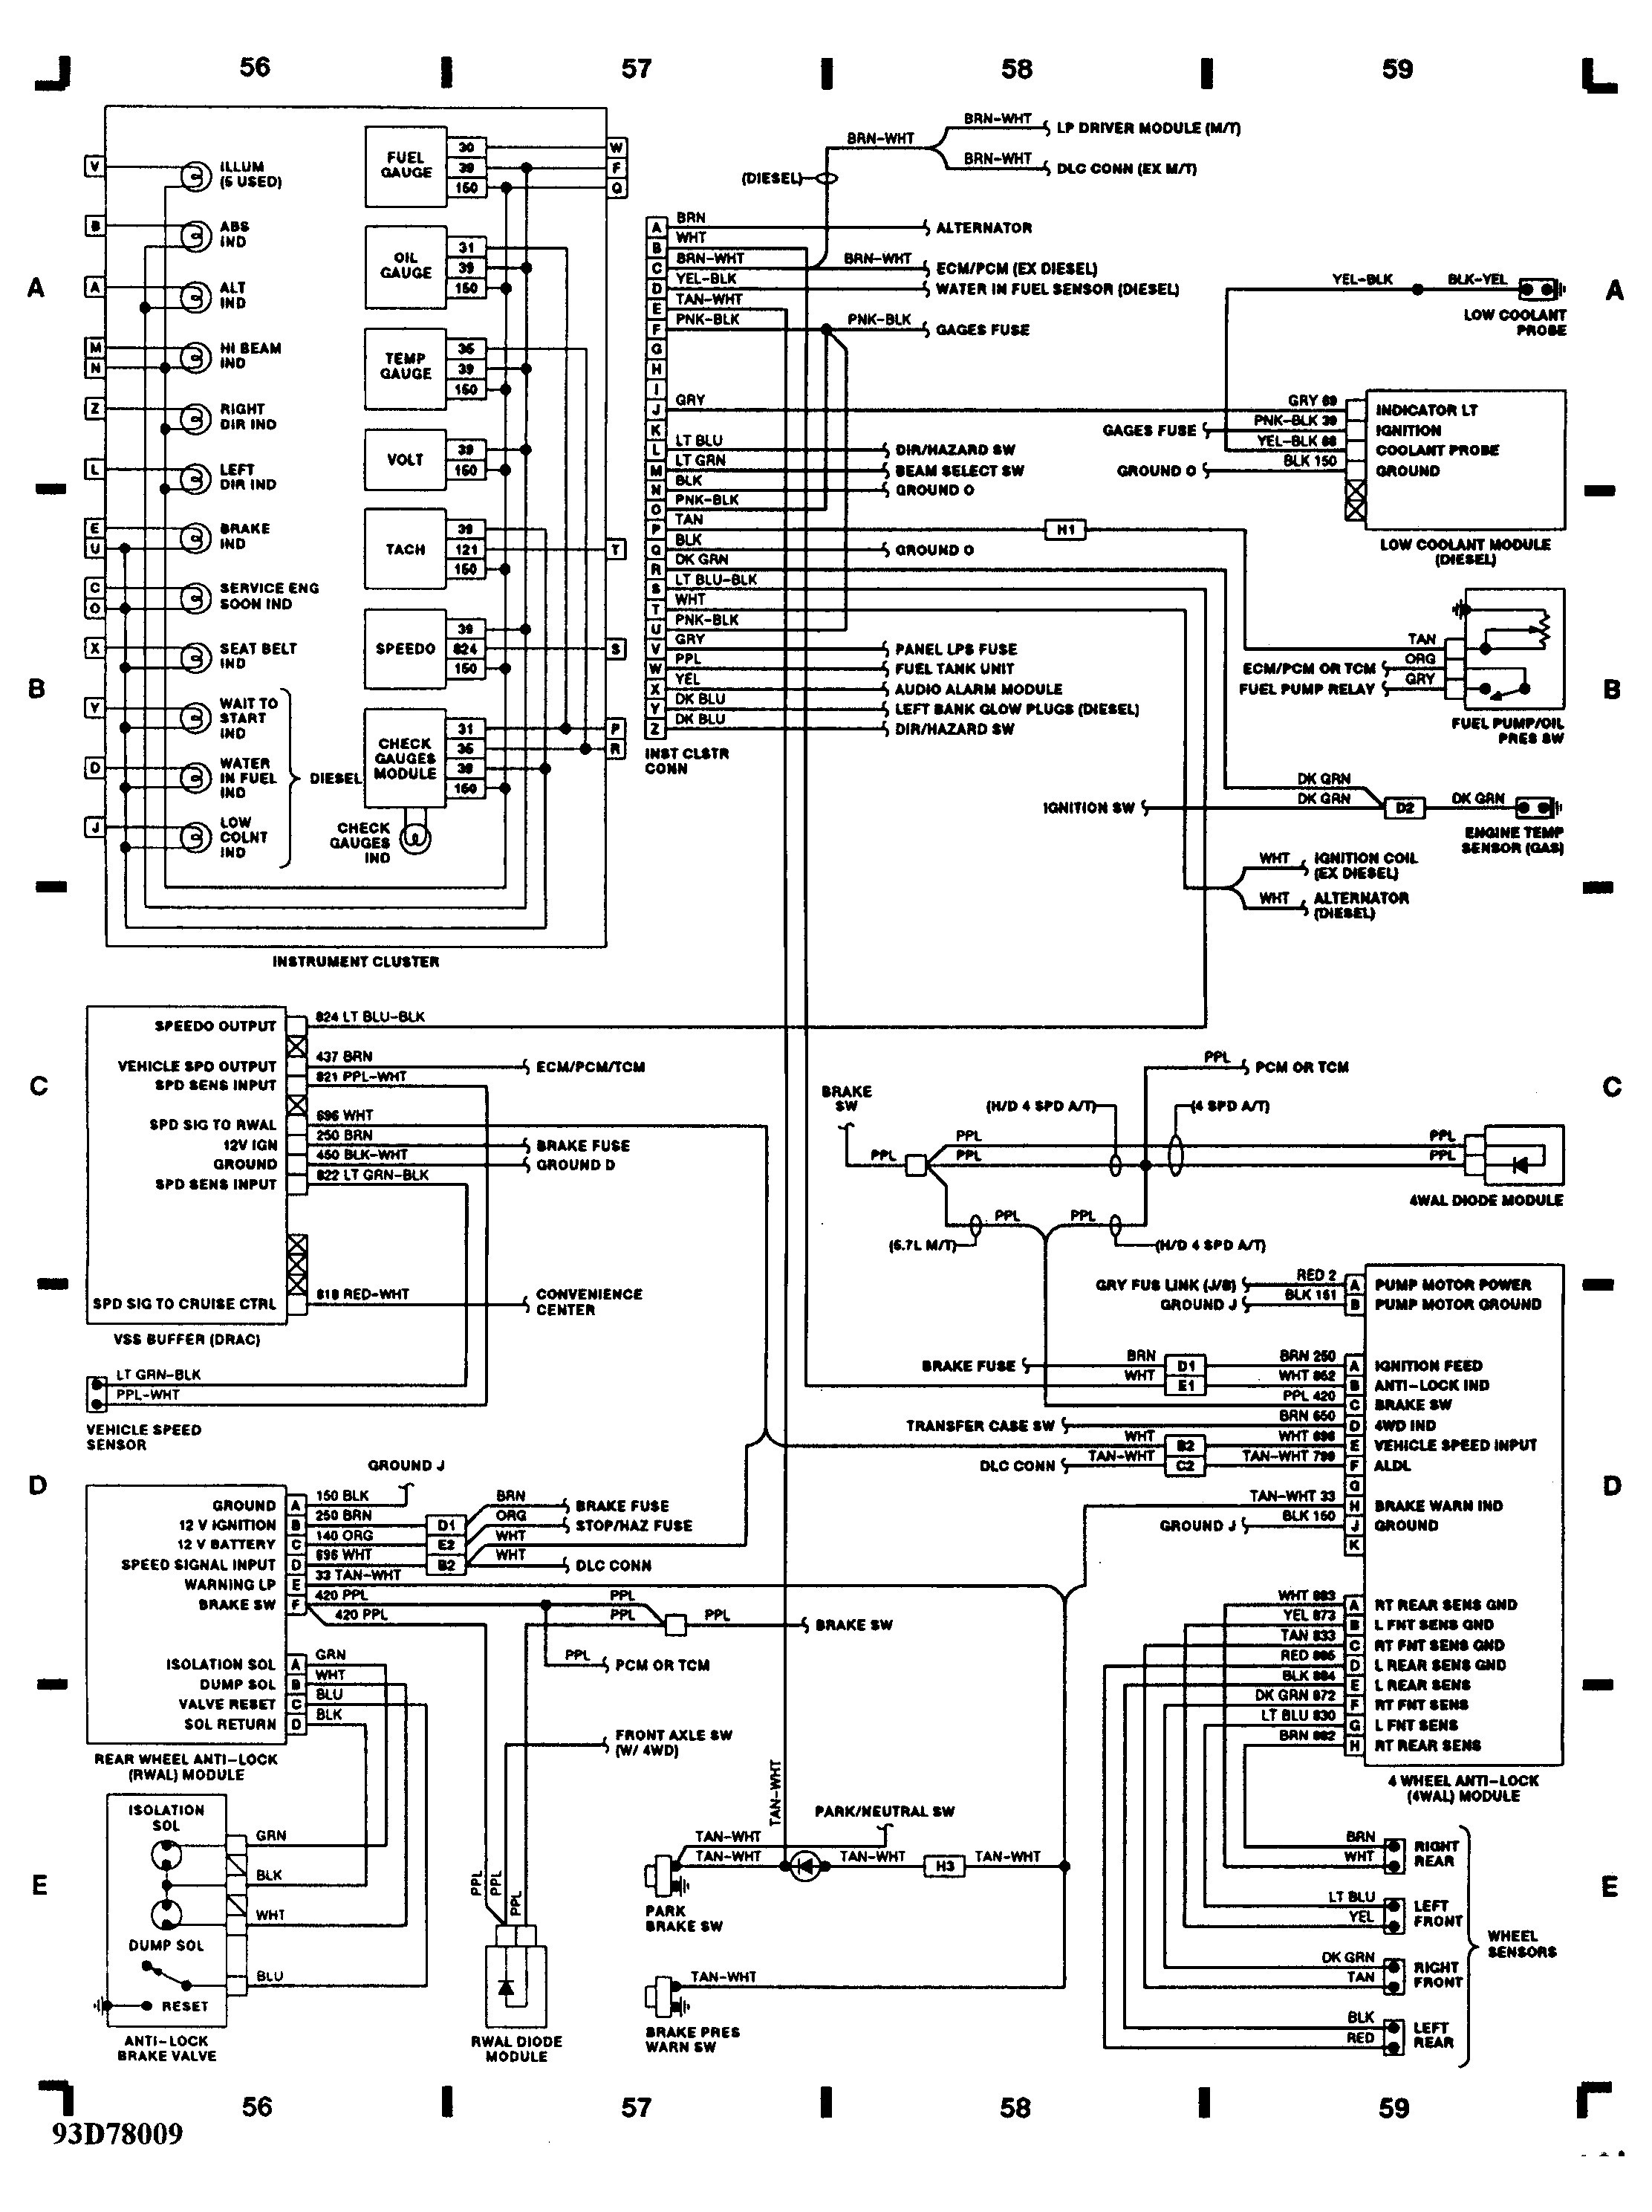 1998 Chevrolet 4 3 Engine Diagram 4.3 vortec distributor ... on